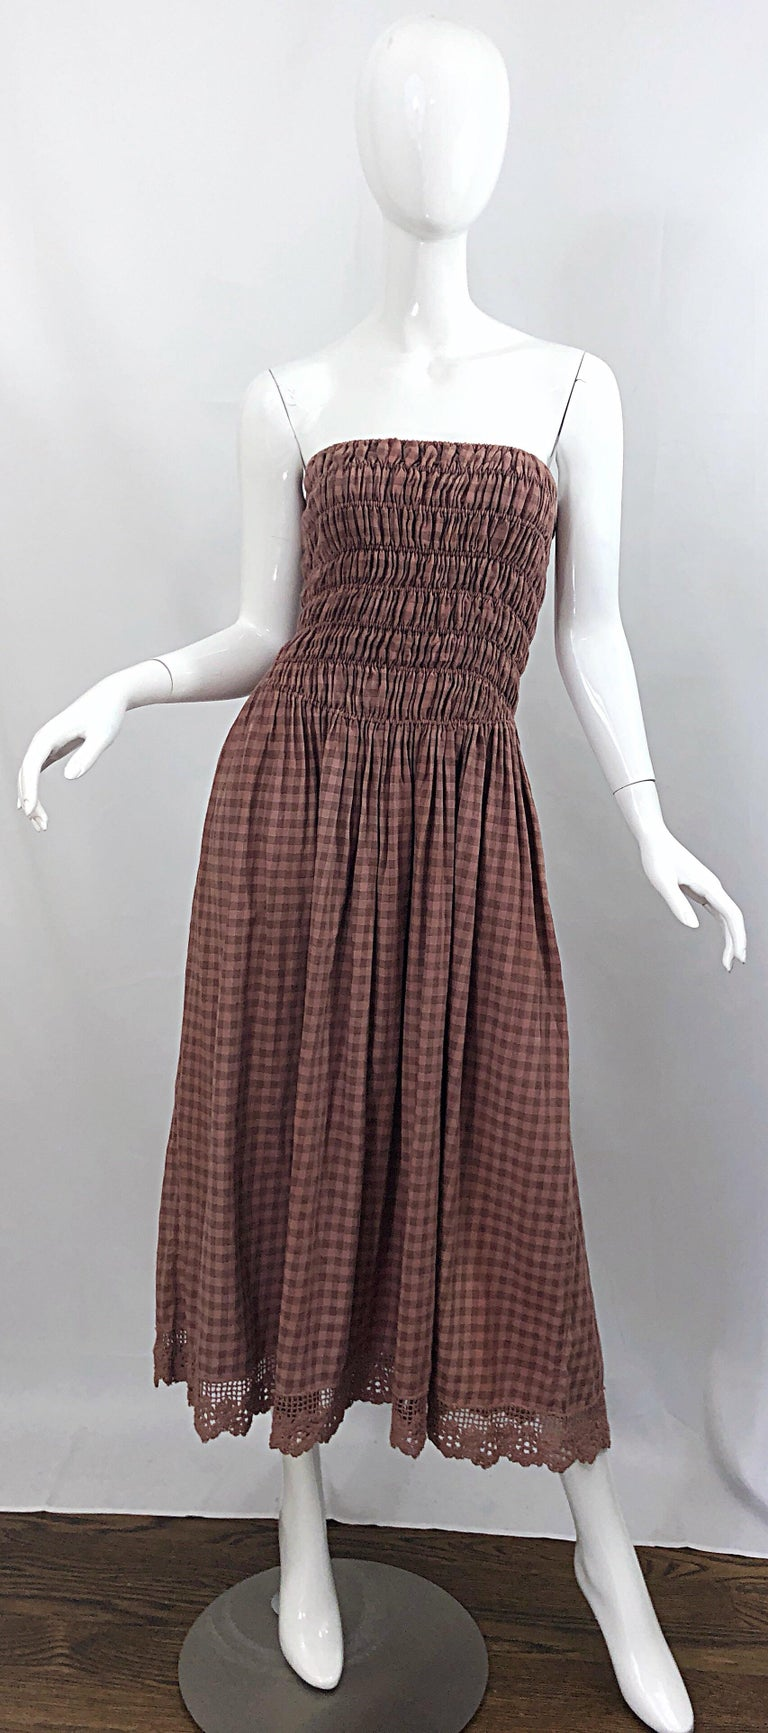 Chic vintage 70s GEOFFREY BEENE ' Beene Bag ' (his rare more risk taking label) checkered gingham dusty rose pink and brown crochet strapless midi dress! Features a stretch cinched bodice that flatters any shape or size. Dusty rose pink and brown,